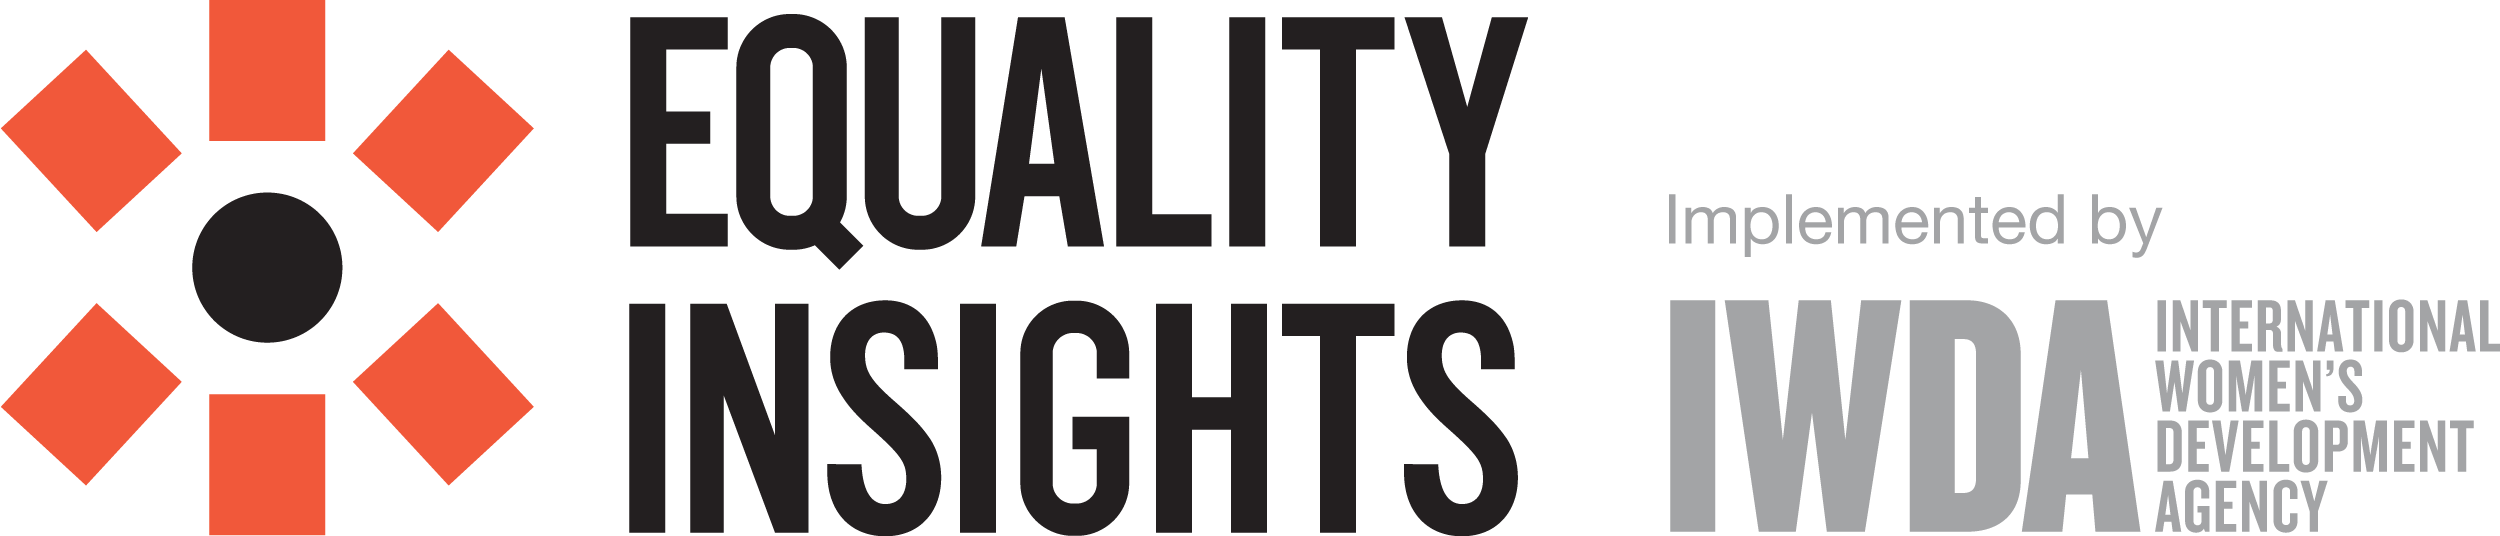 Equality Insights - implemented by IWDA